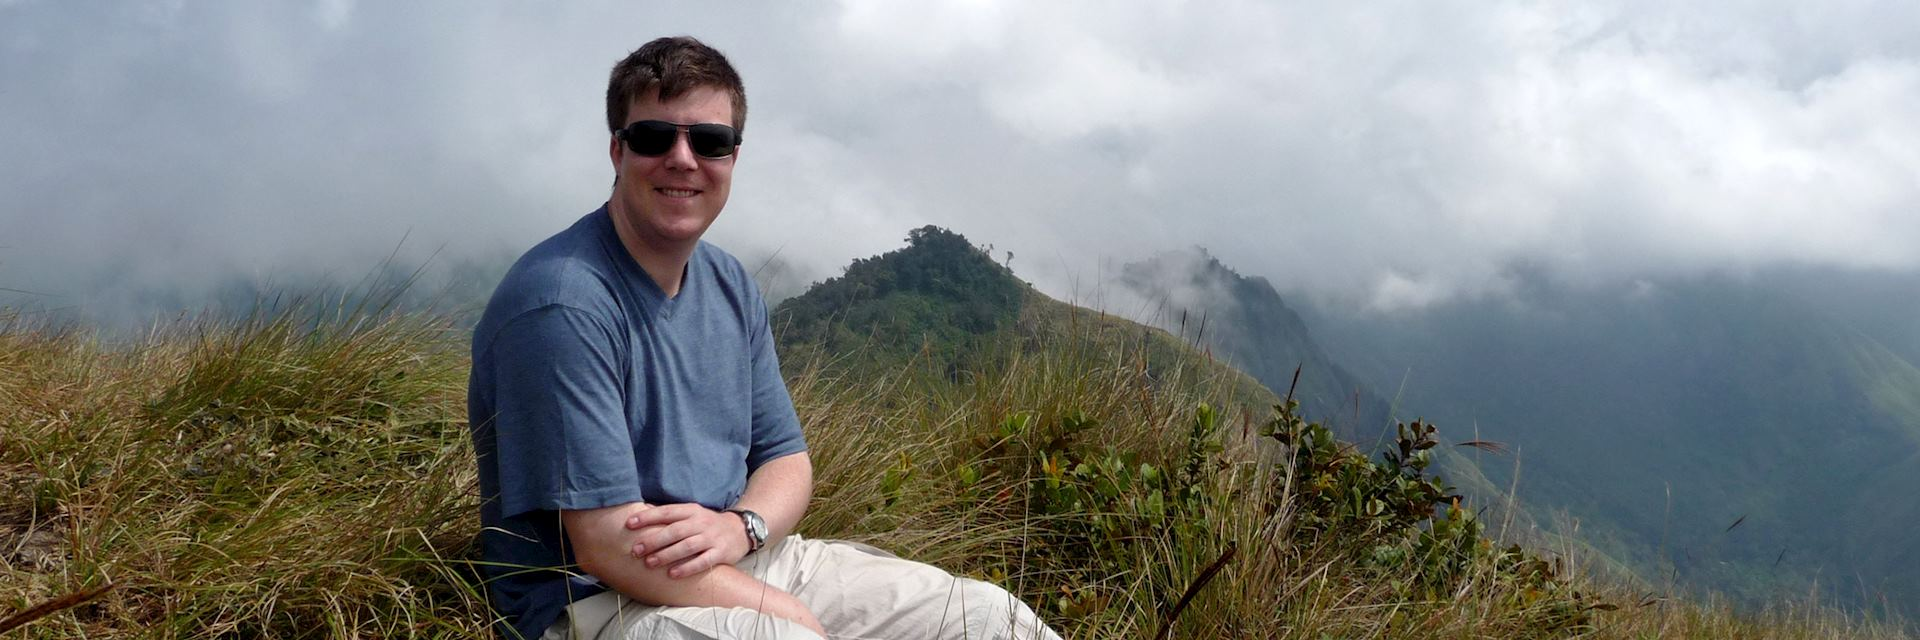 James enjoying the view in Munnar, India